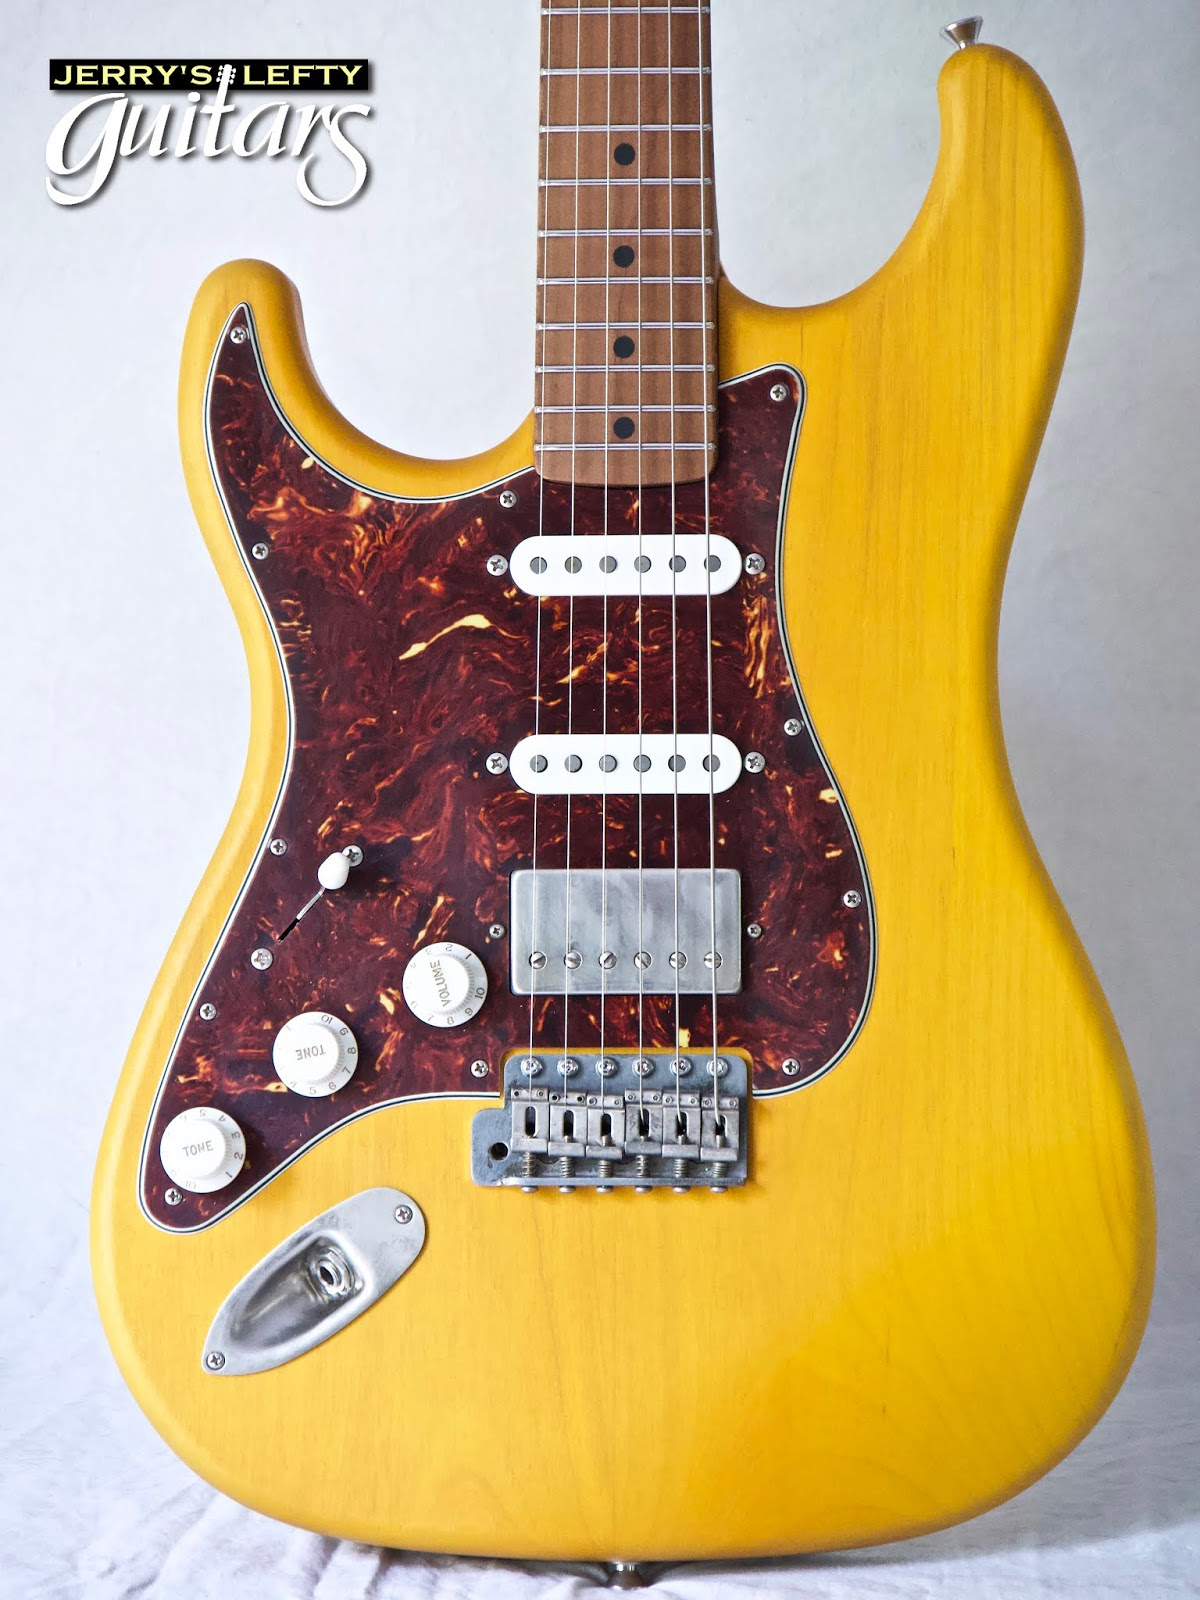 Jerry's Lefty Guitars newest guitar arrivals  Updated weekly!: LsL